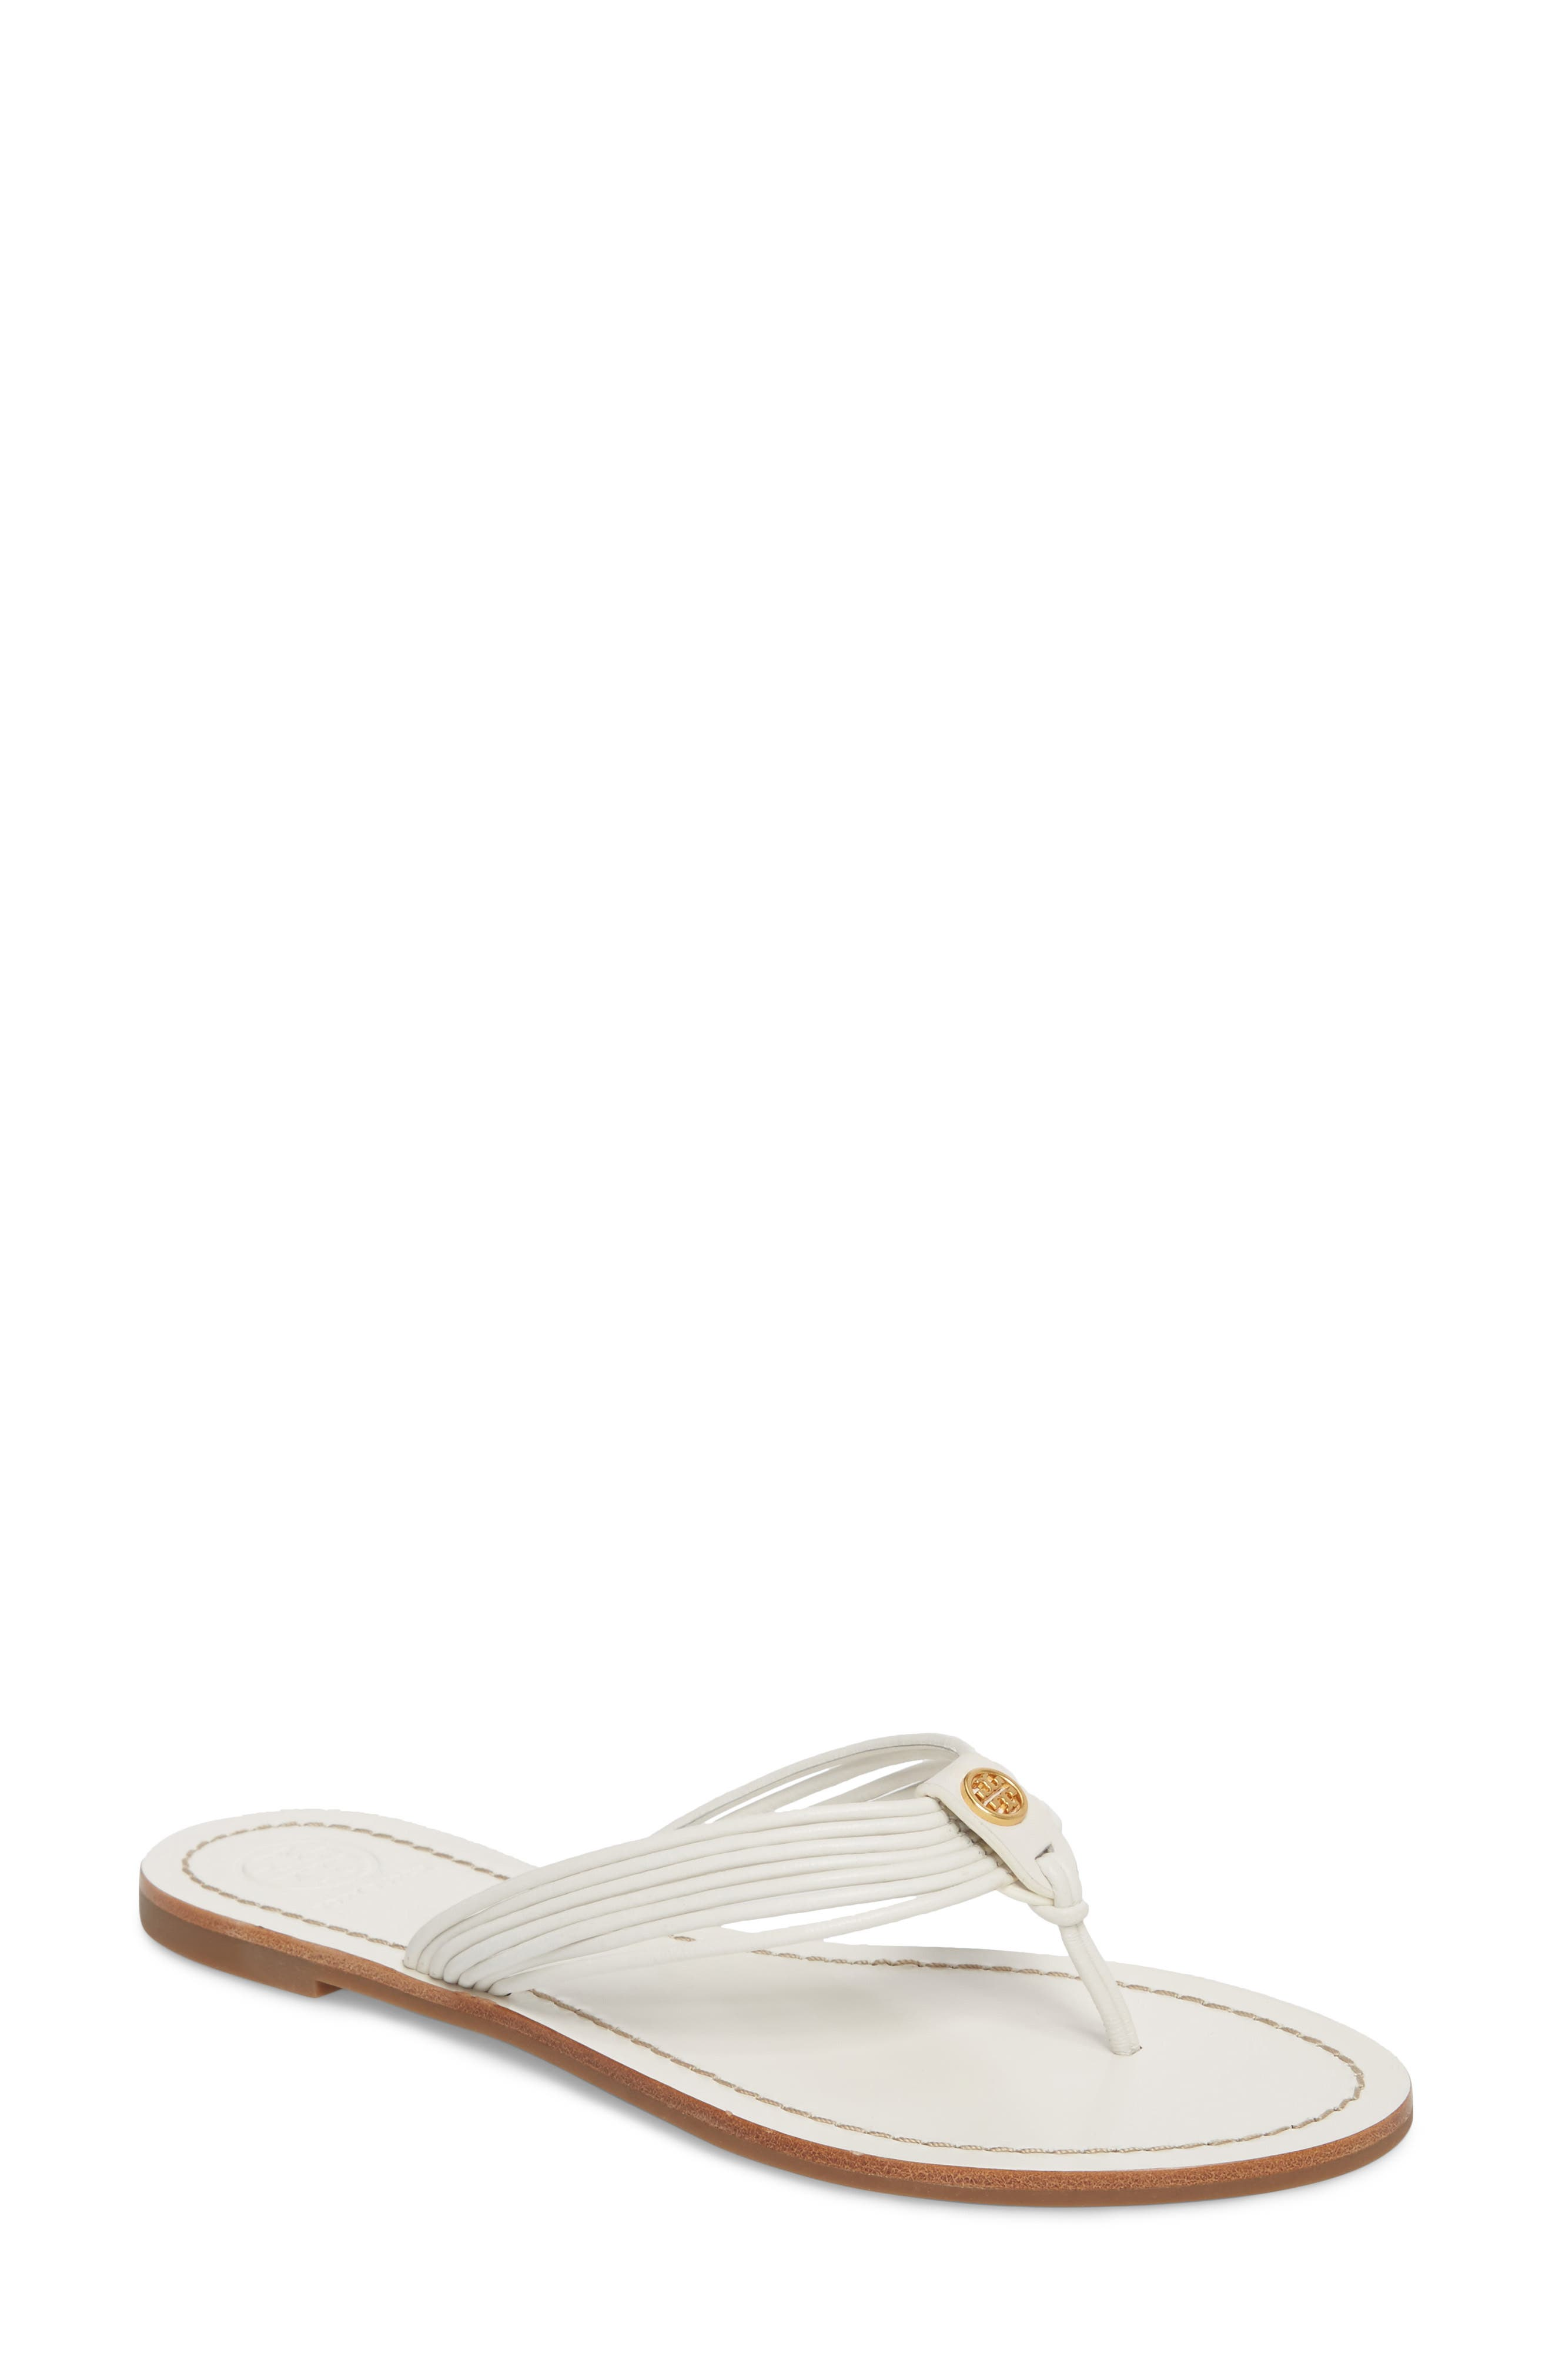 Sienna Strappy Thong Sandal,                             Main thumbnail 1, color,                             Perfect White/ Perfect White